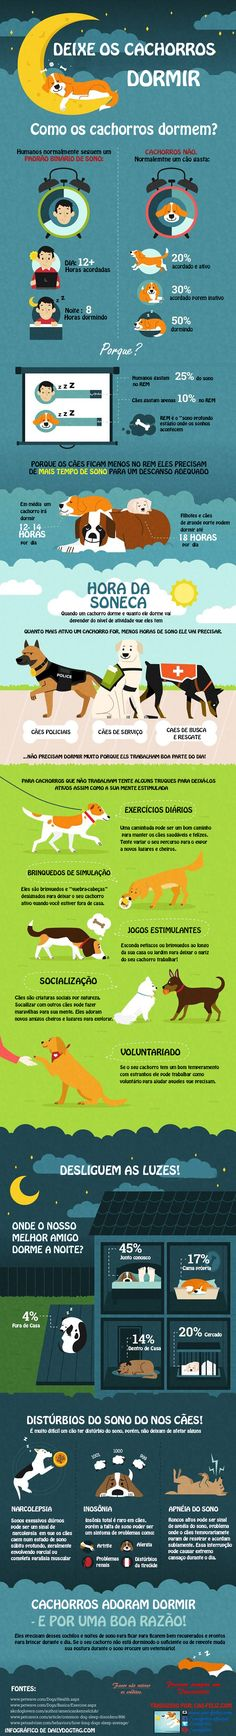 Dog Infographic Let Sleeping Dogs Lie Www Dailydogtag C Many people store fat in the belly, and losing fat from this area can be hard. Here are Dog Infographic Let Sleeping Dogs Lie Www Dailydogtag C tips to lose belly fat, based on studies. Yorkie, Chihuahua, Dog Care Tips, Pet Care, Pet Tips, I Love Dogs, Cute Dogs, Education Canine, Dog Facts